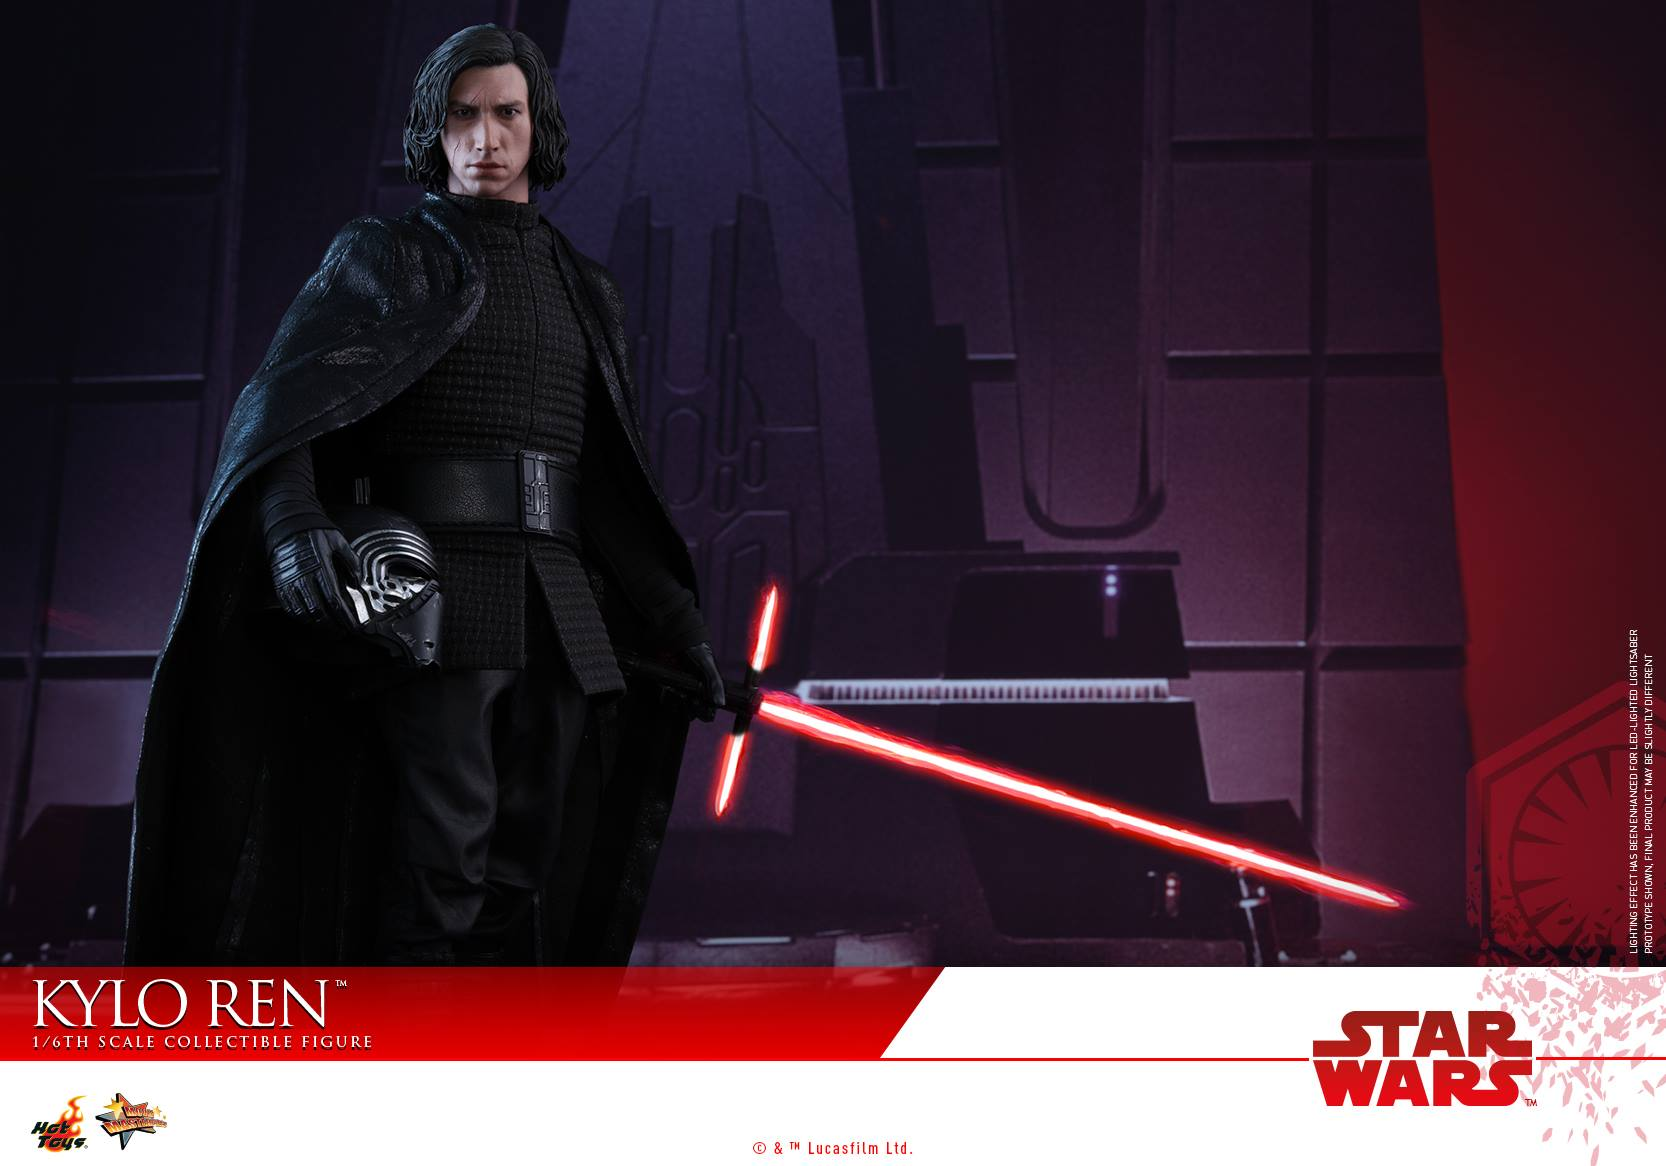 SW: The Last Jedi - 1/6th scale Kylo Ren Collectible Figure